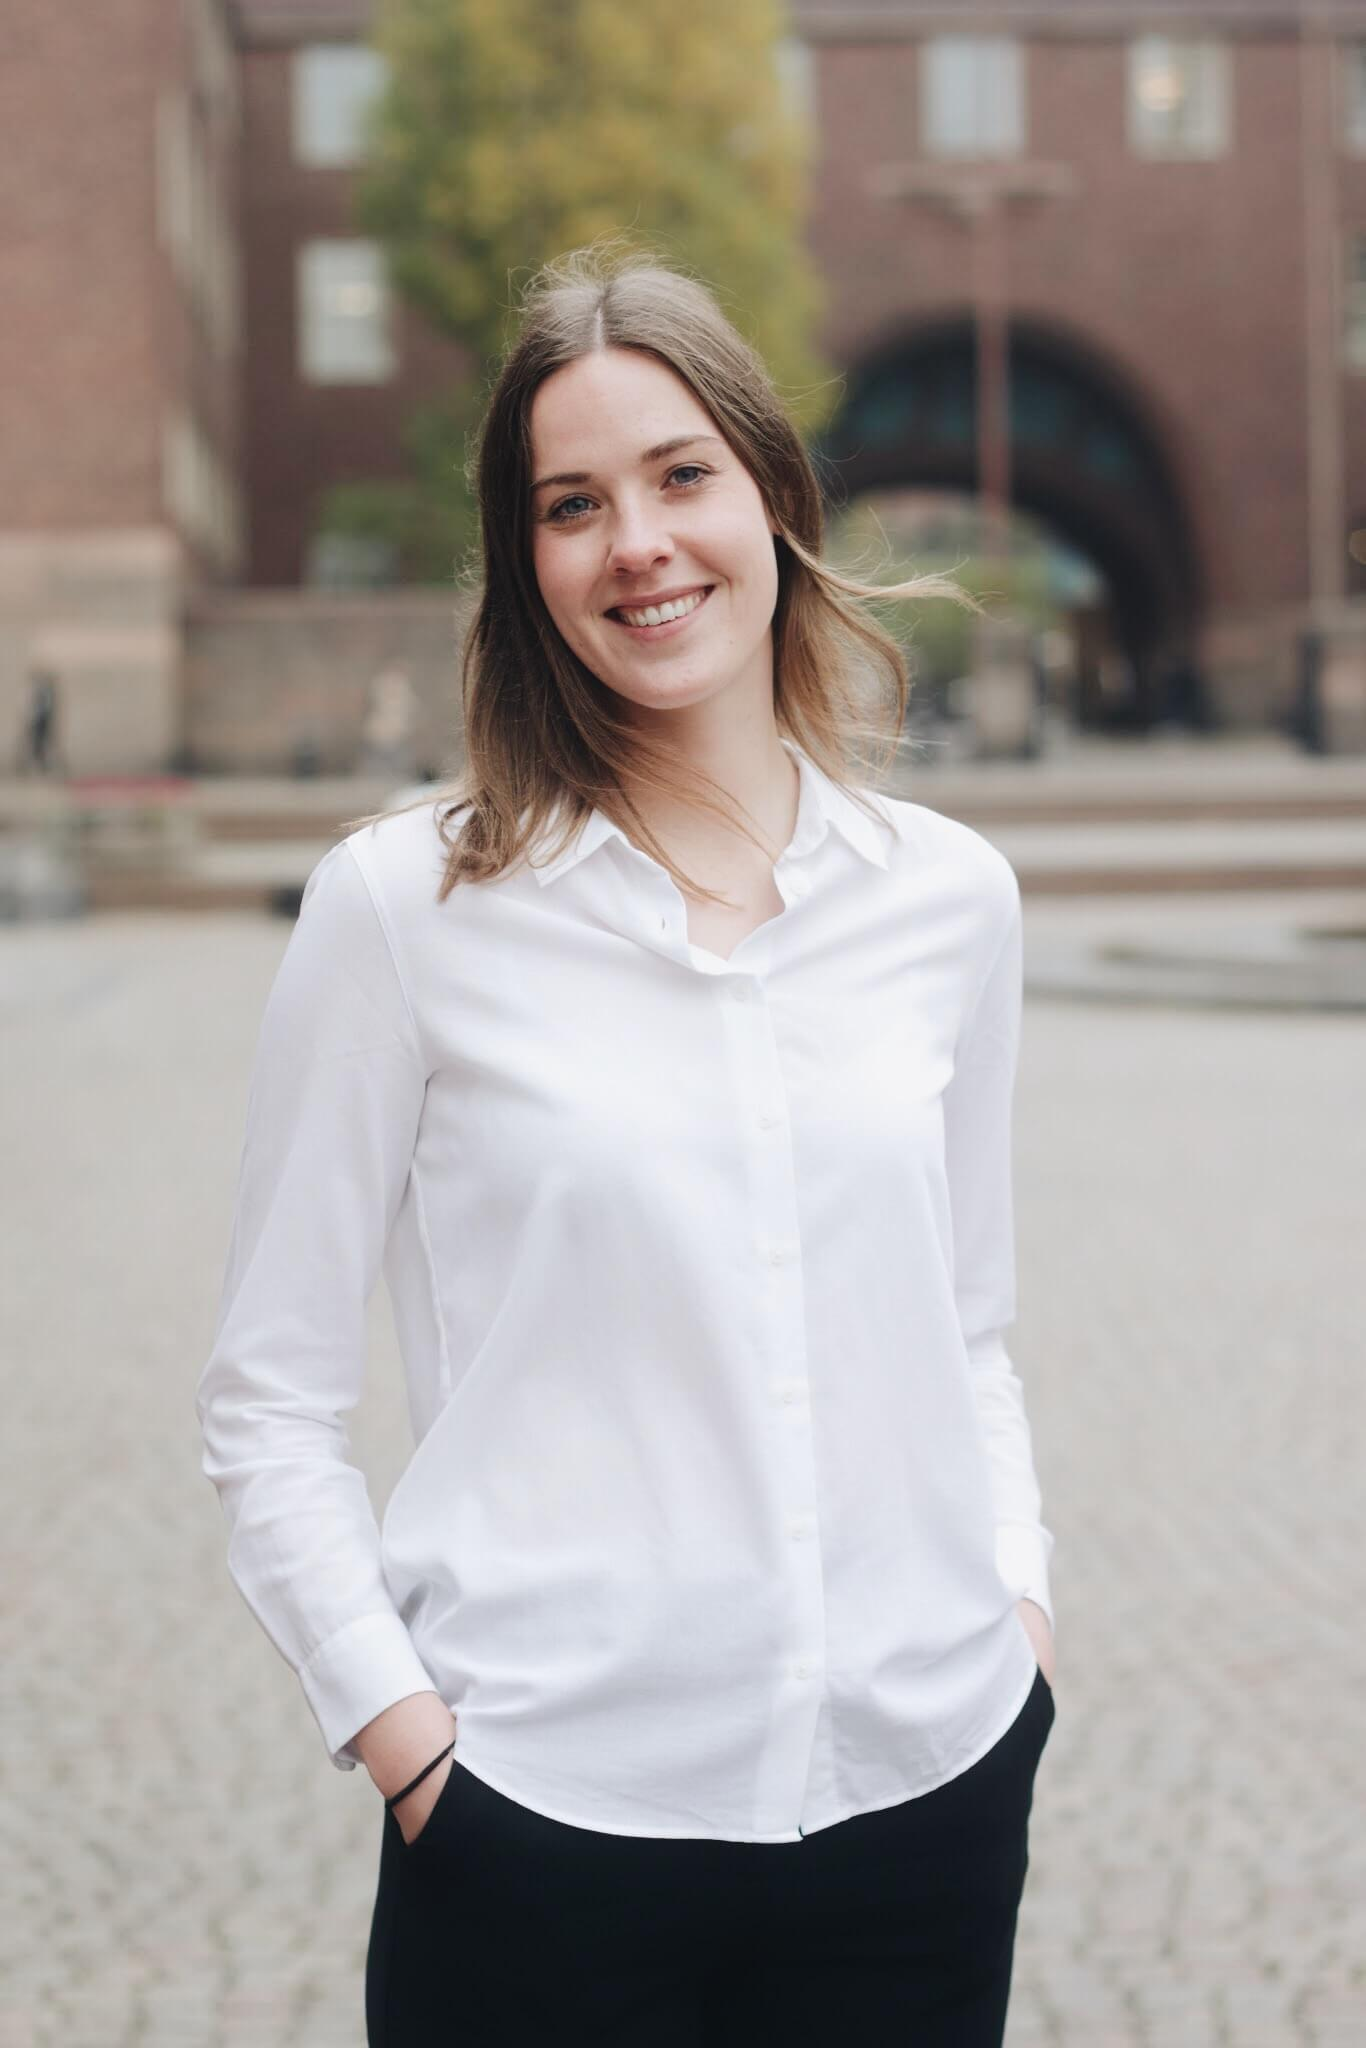 Beatrice Boström, Project Manager